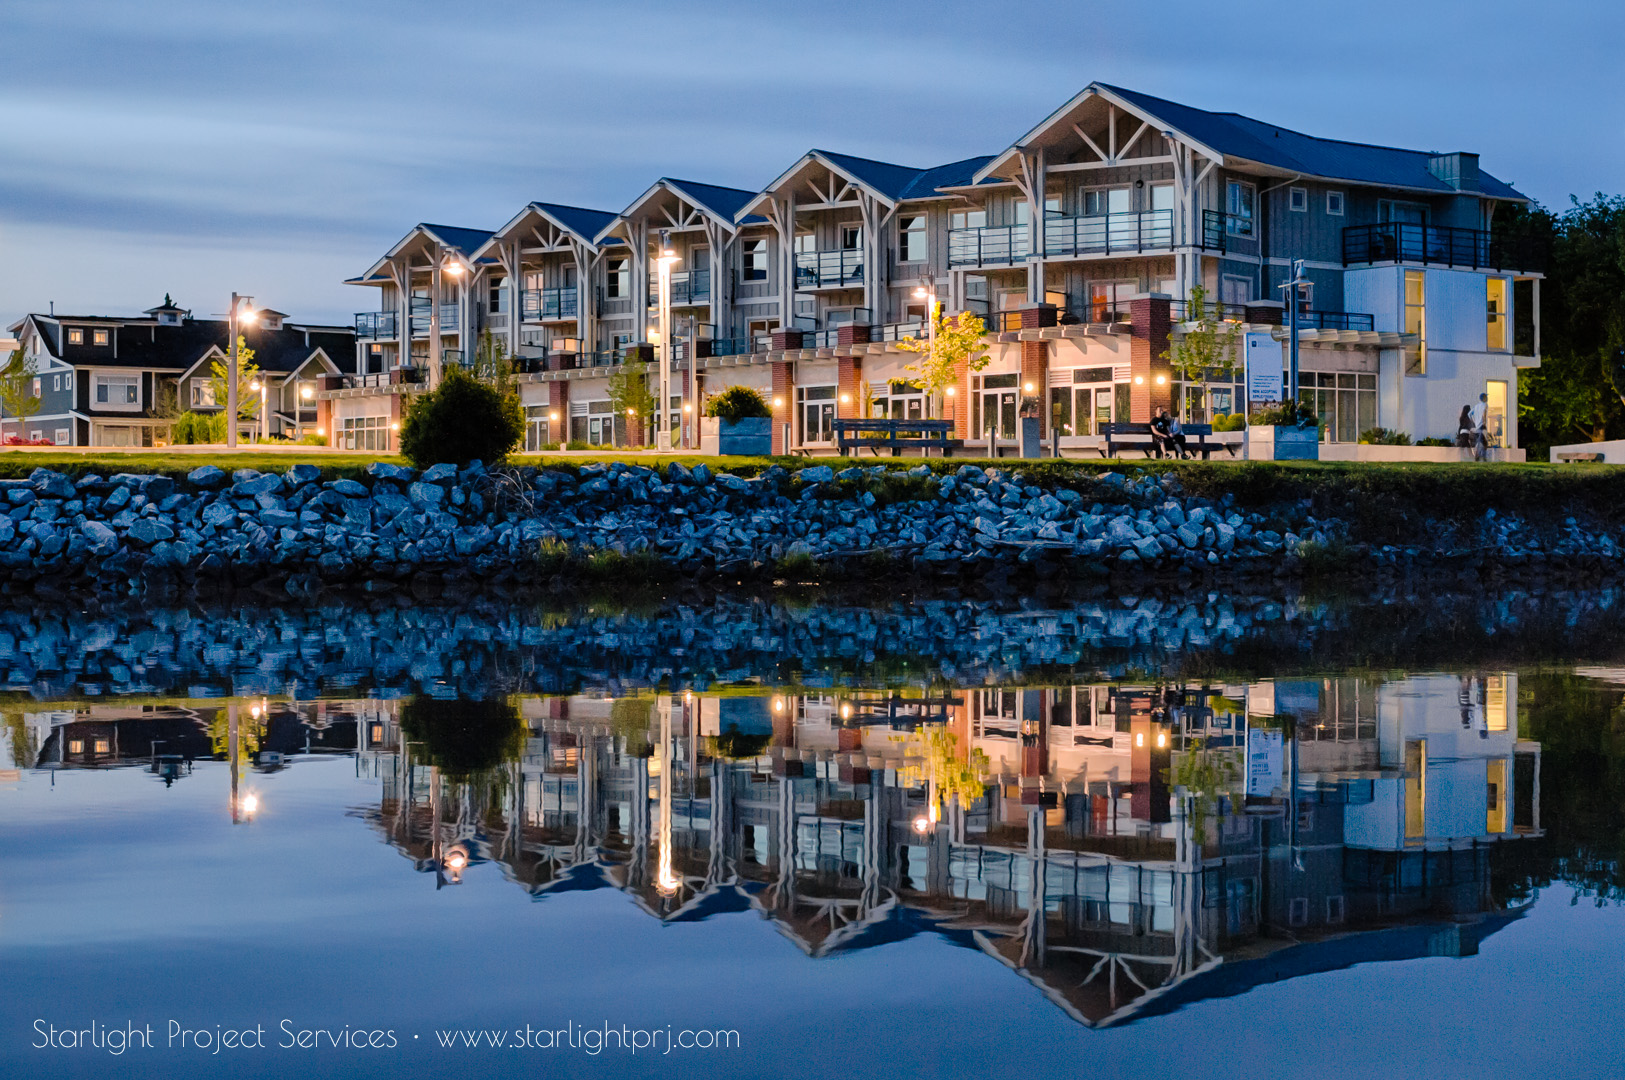 Architecture Photography Services vancouver architectural photography, interior & exterior